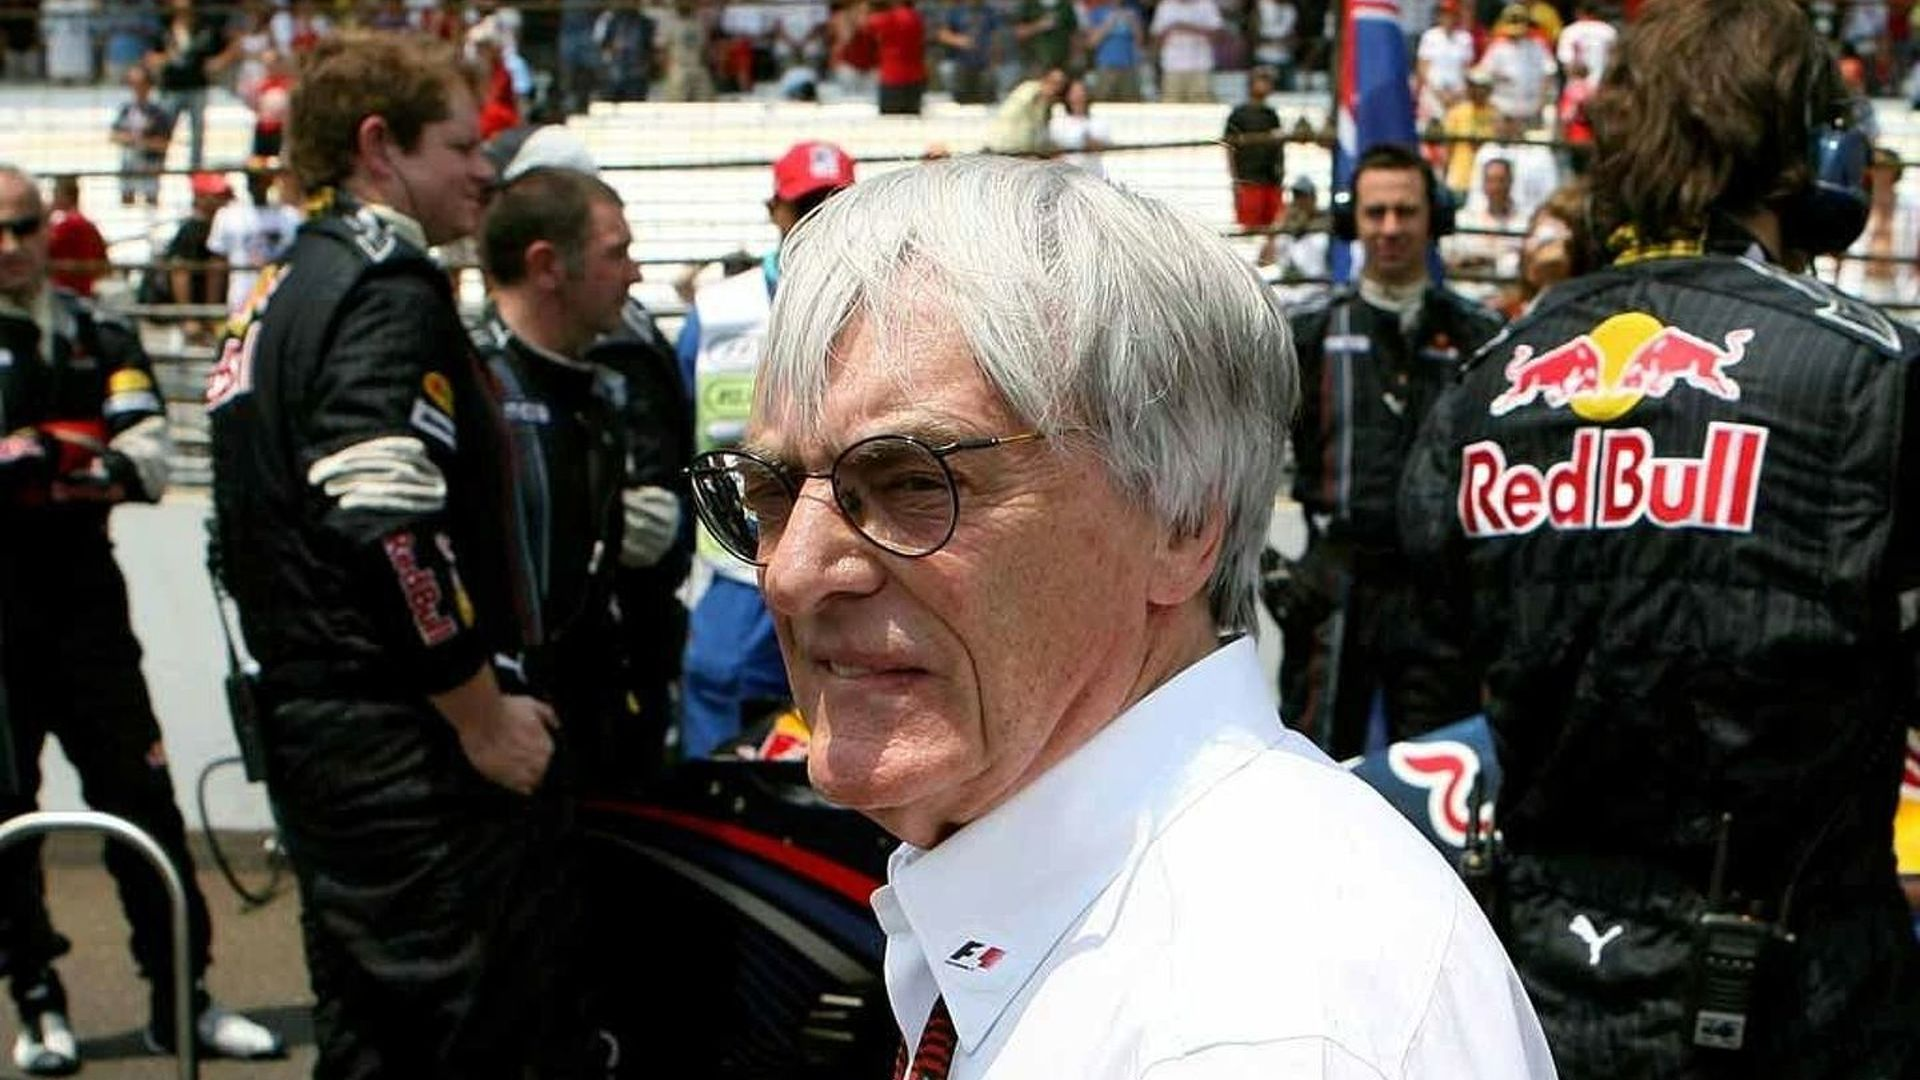 Ecclestone calls for 'patience' amid crisis